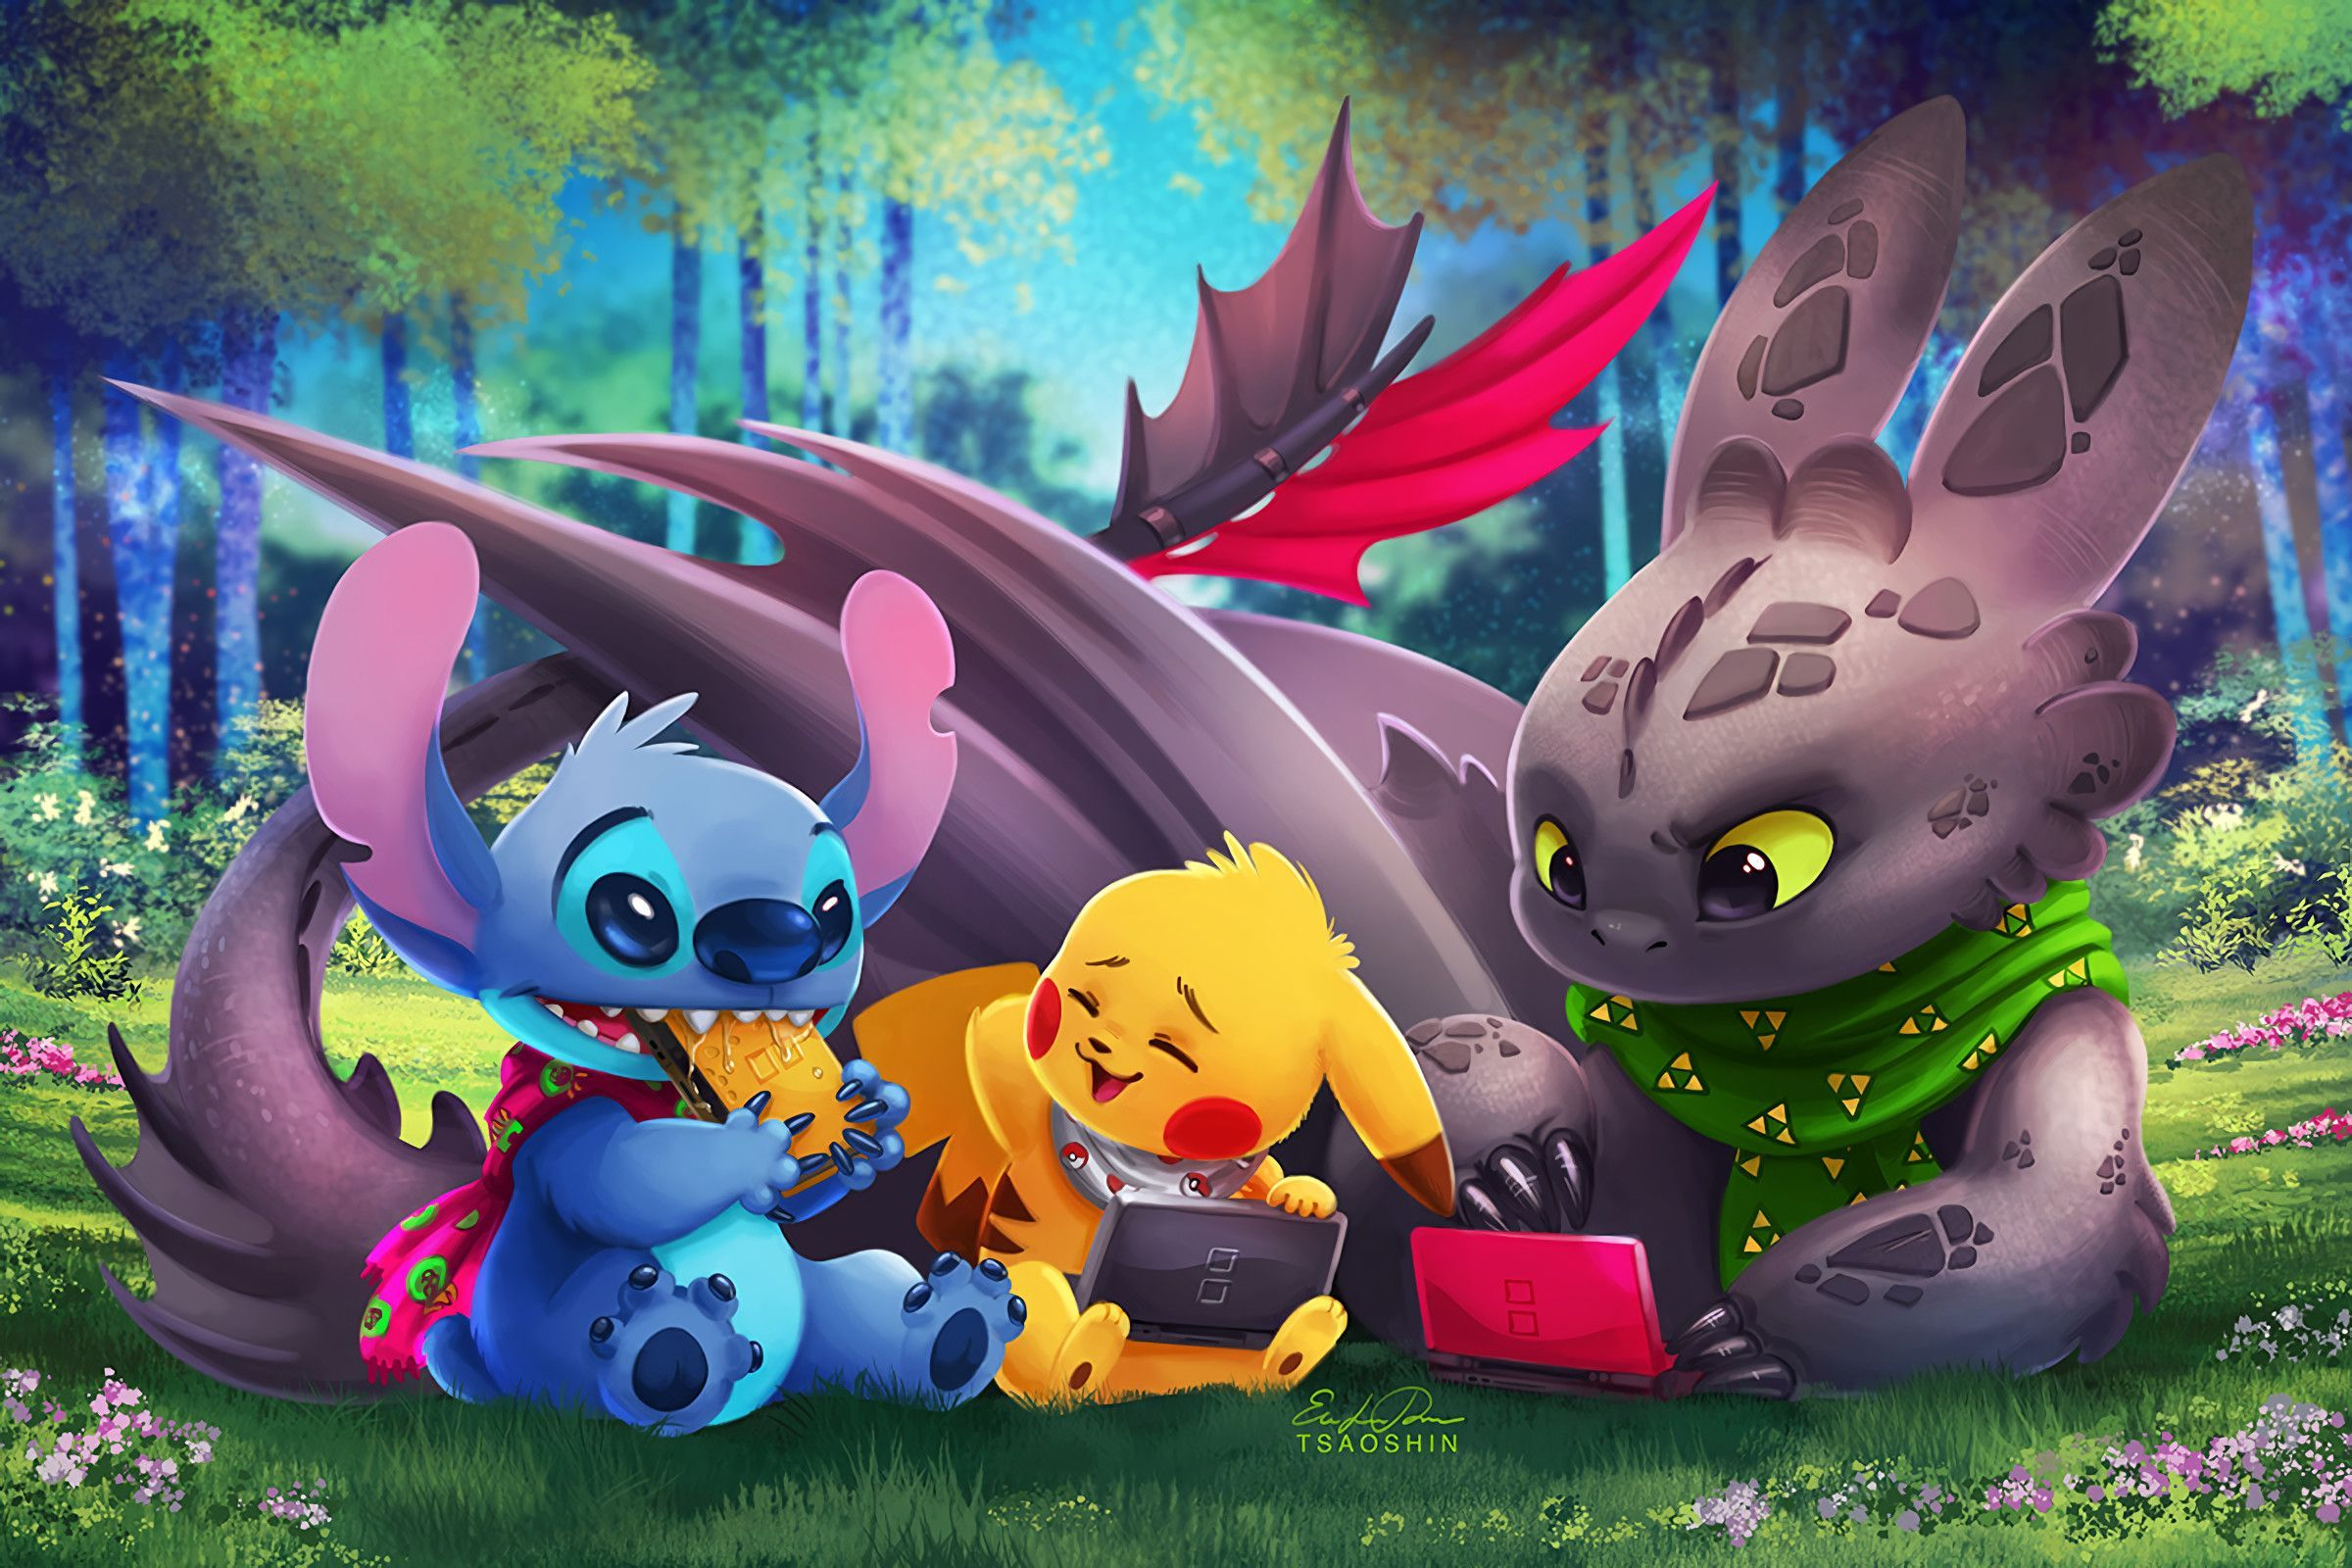 Toothless And Stitch Wallpapers Top Free Toothless And Stitch Backgrounds Wallpaperaccess